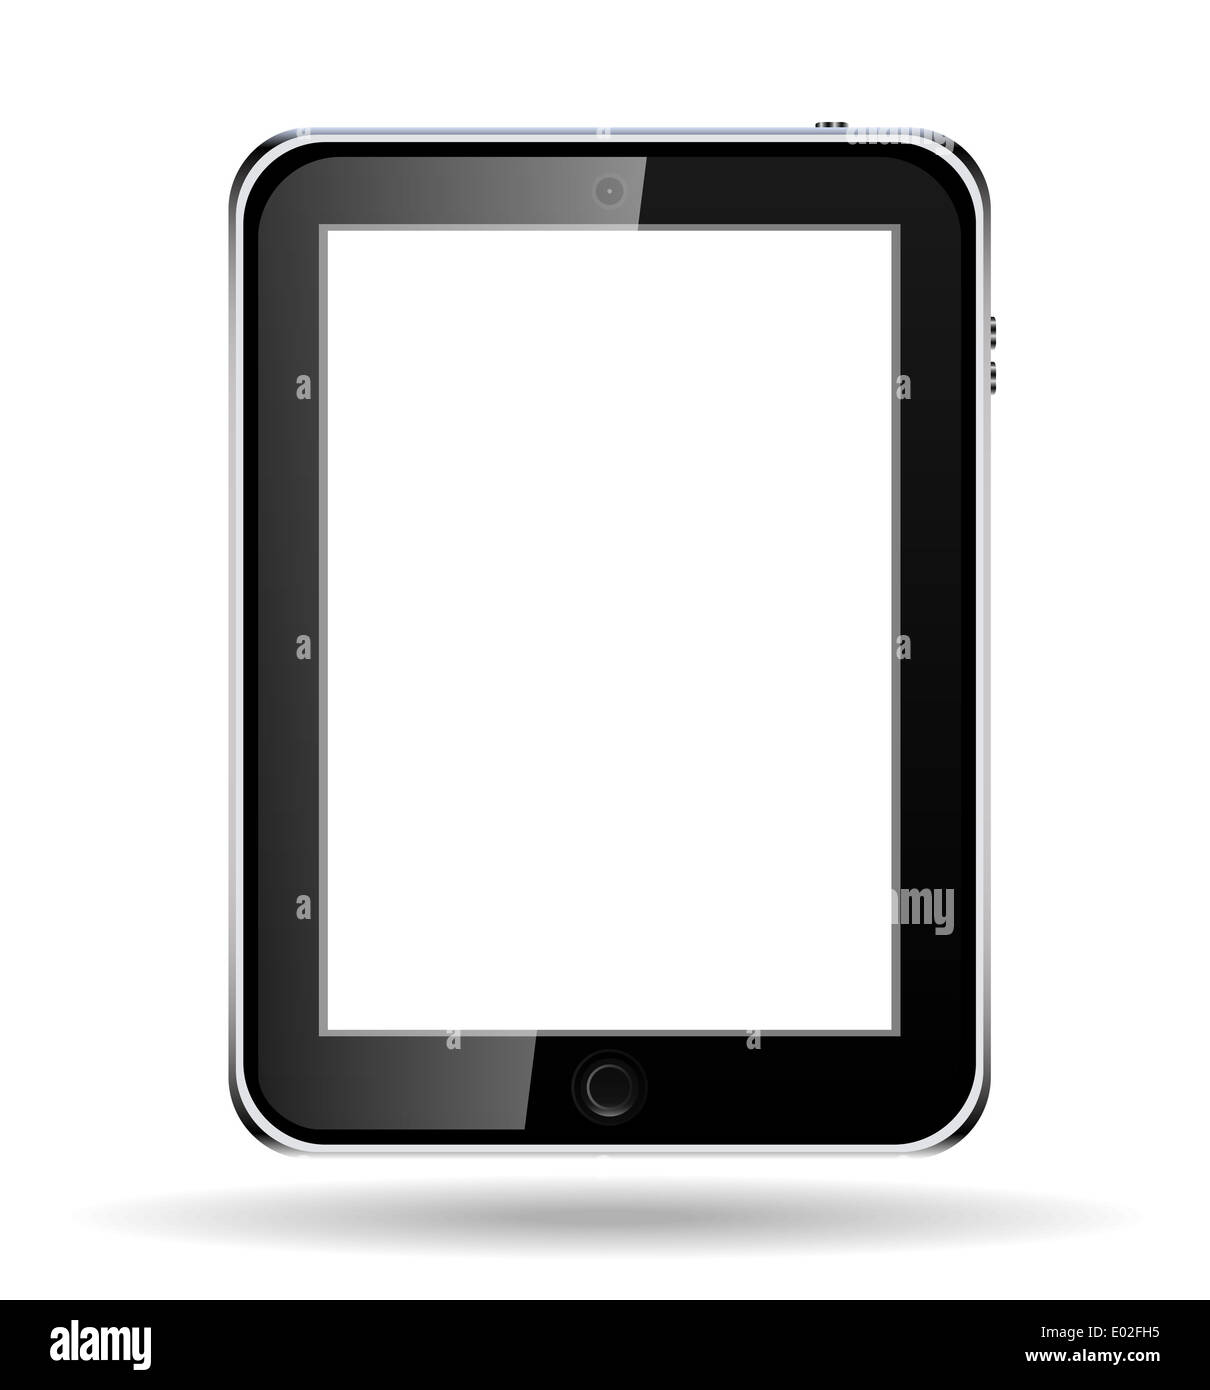 Realistic tablet computer with blank screen. - Stock Image